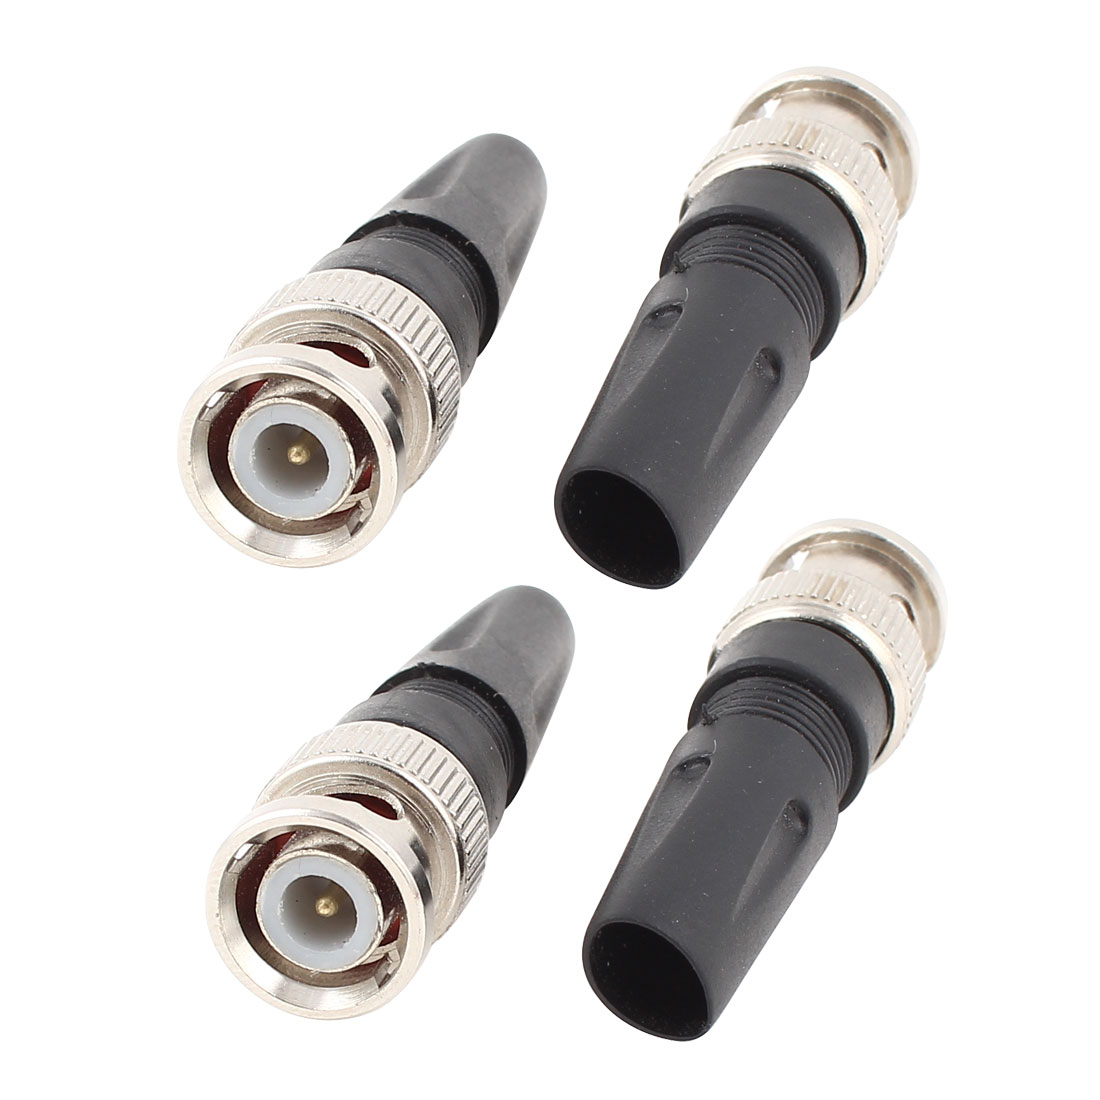 Black PU Sleeve Strain Relief Solderless Straight BNC Male Plug Connector Adapter 4 Pcs